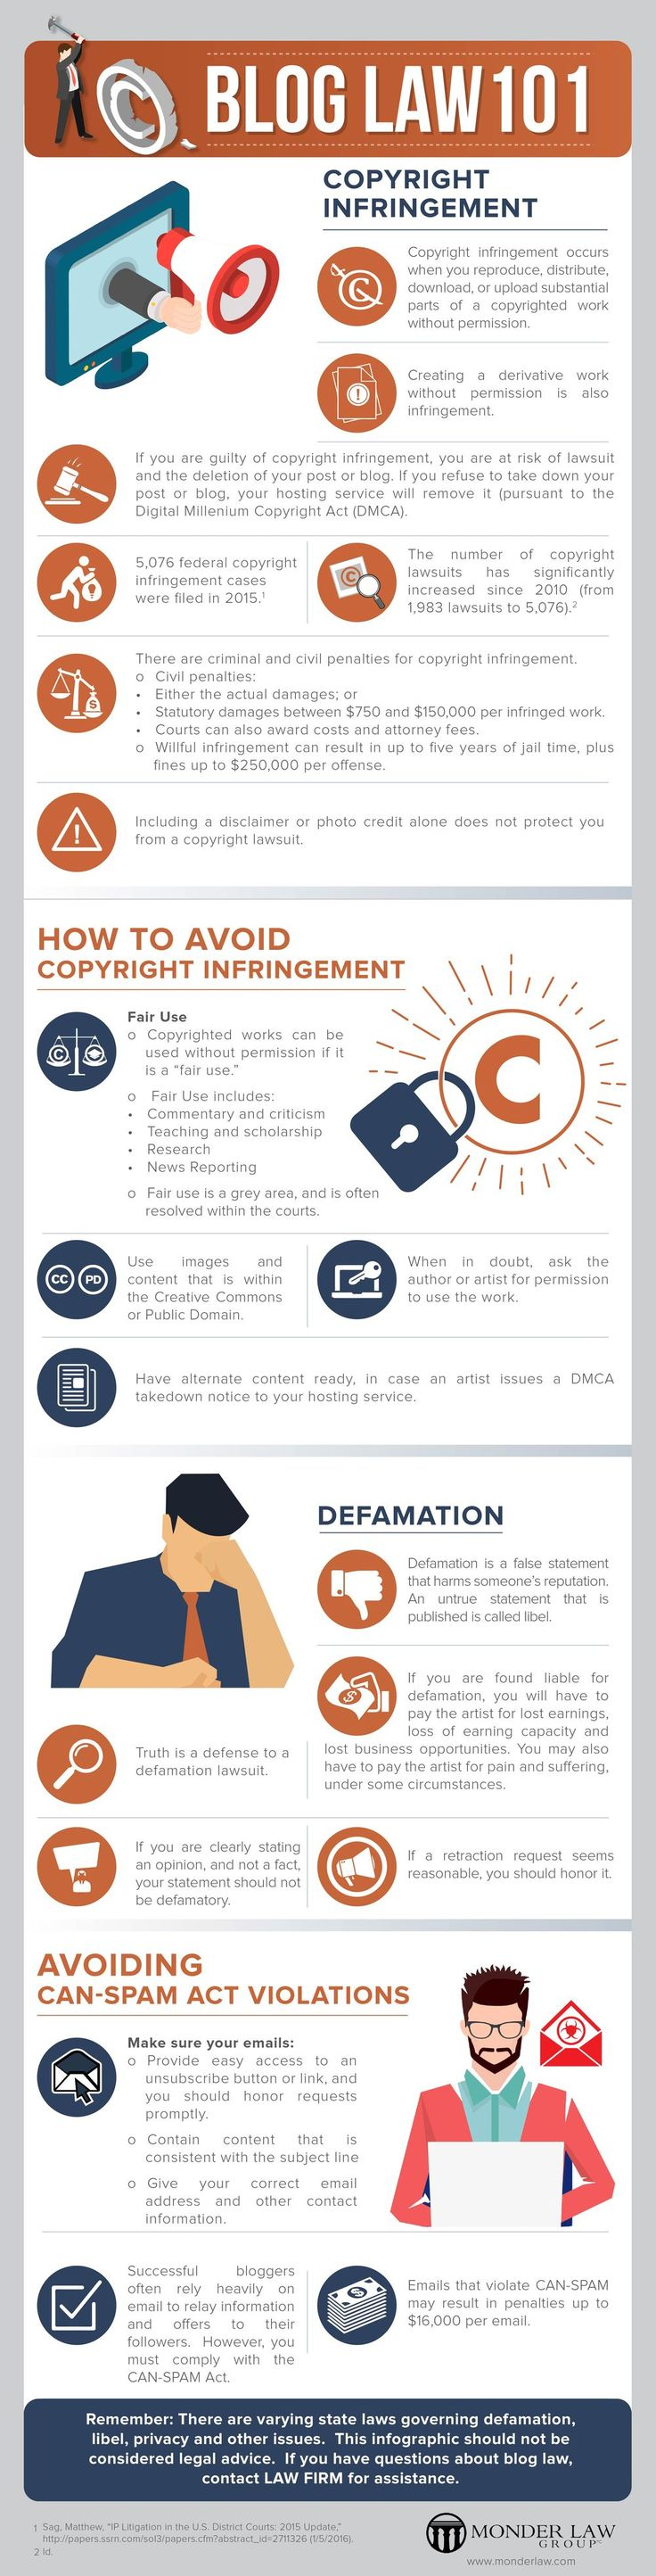 Blog Law 101 #Infographic #Blogging #Law